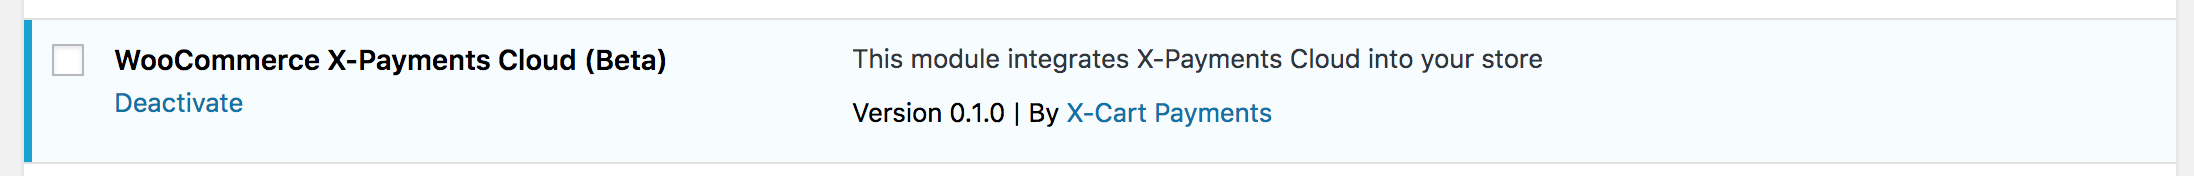 X-Payments in WooCommerce modules list